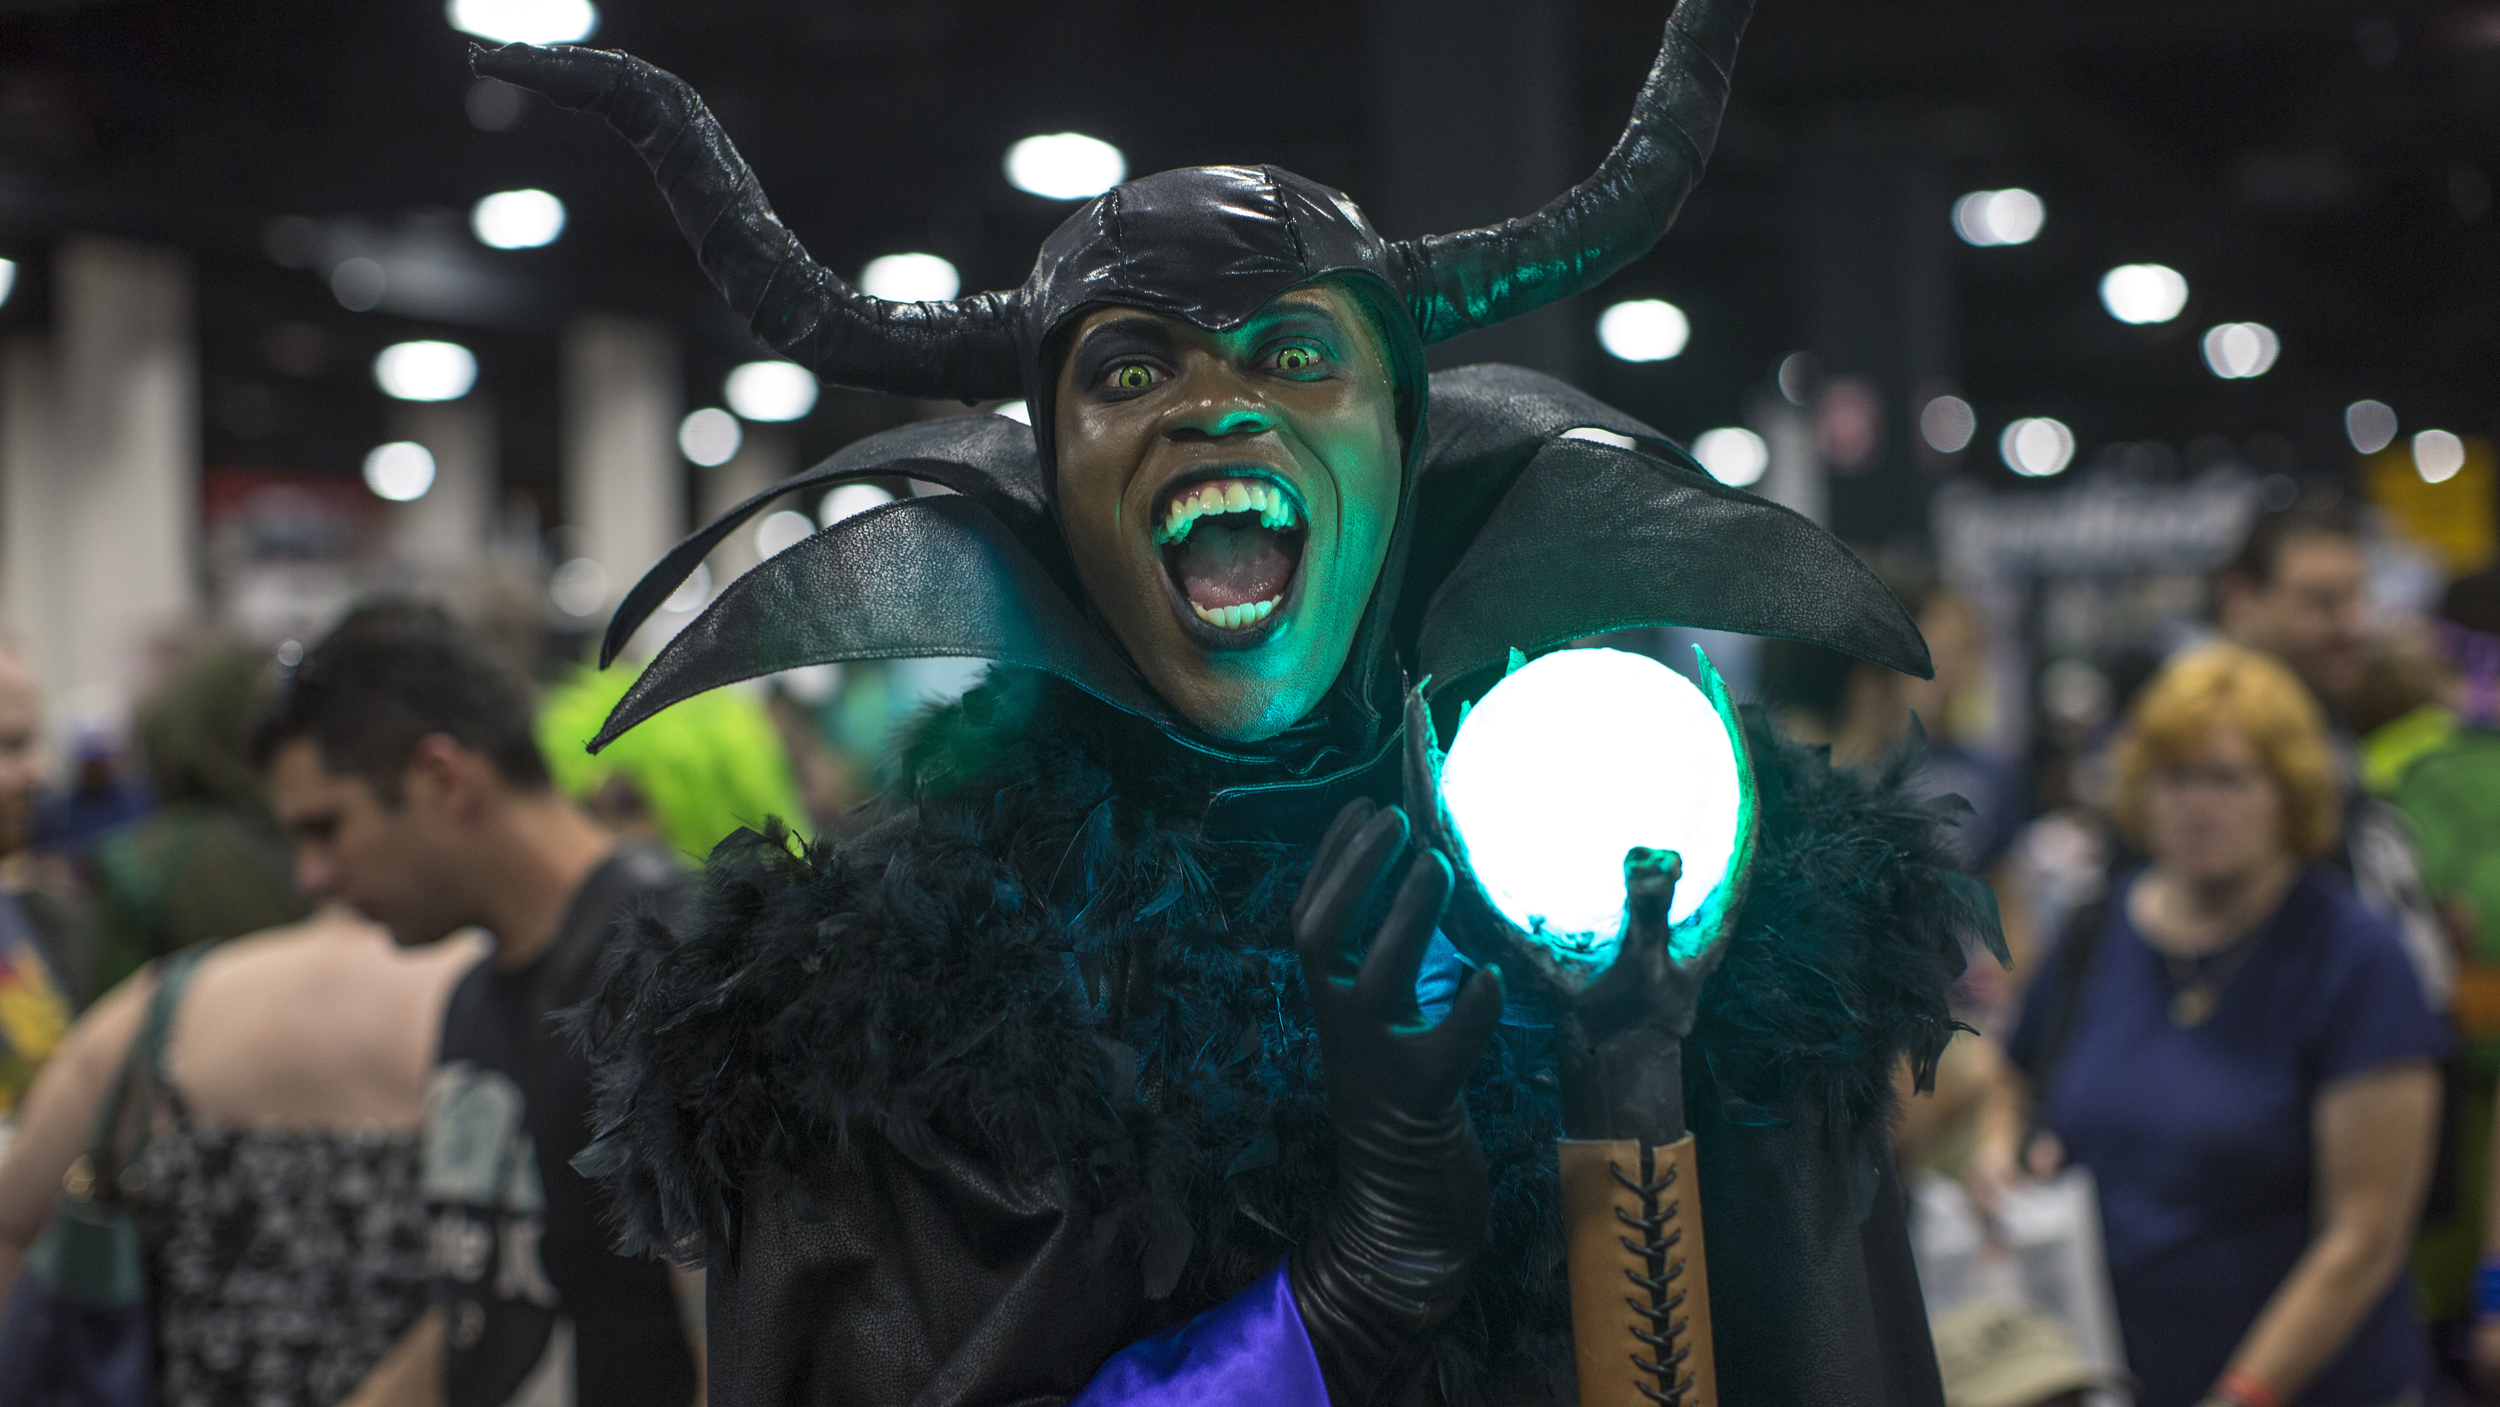 Cosplayer Brandon the Shapeshifter brought out his best Maleficent at the Boston ComicCon